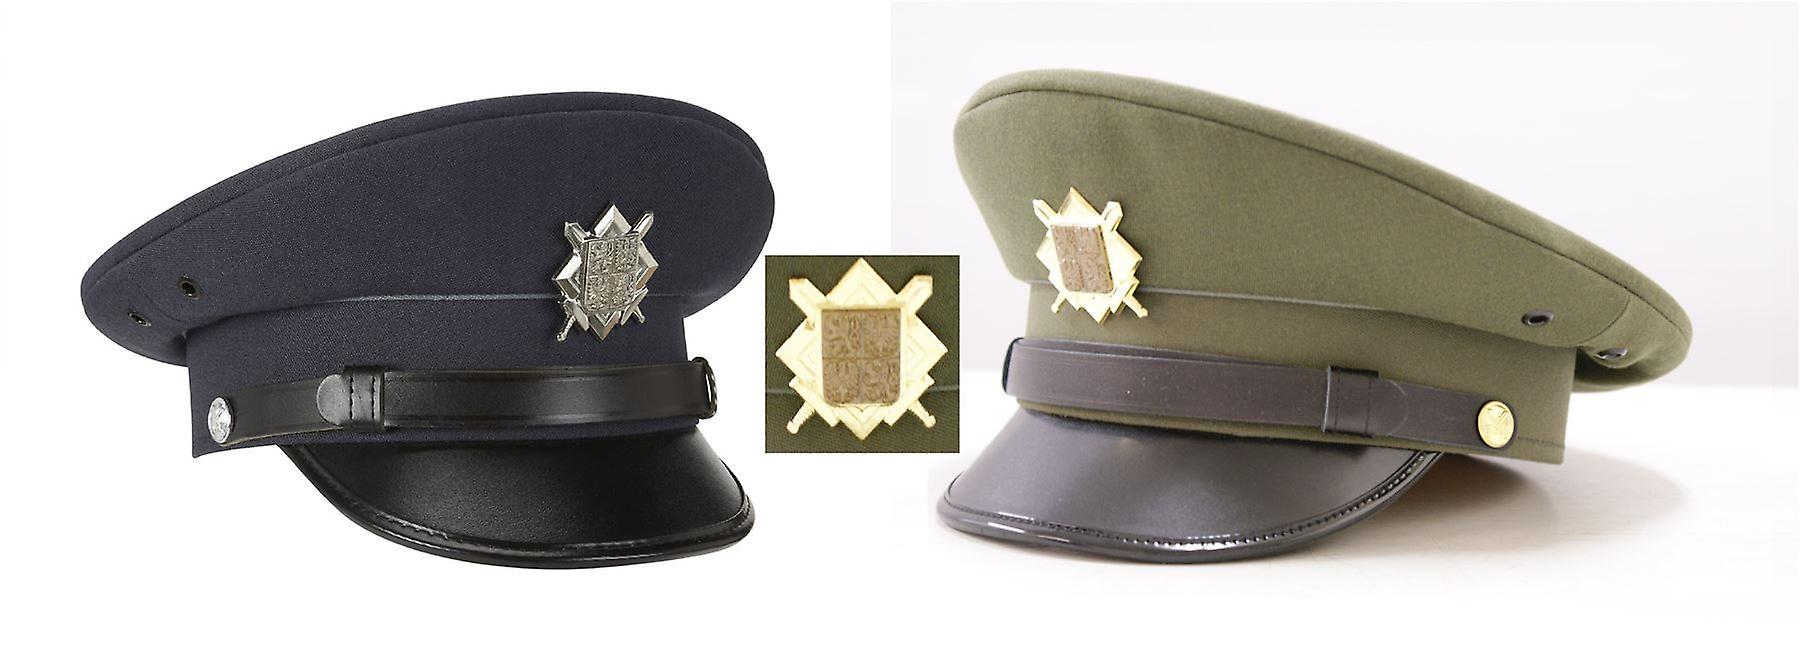 Czech Military Nco Army Officers Peaked Cap Badge